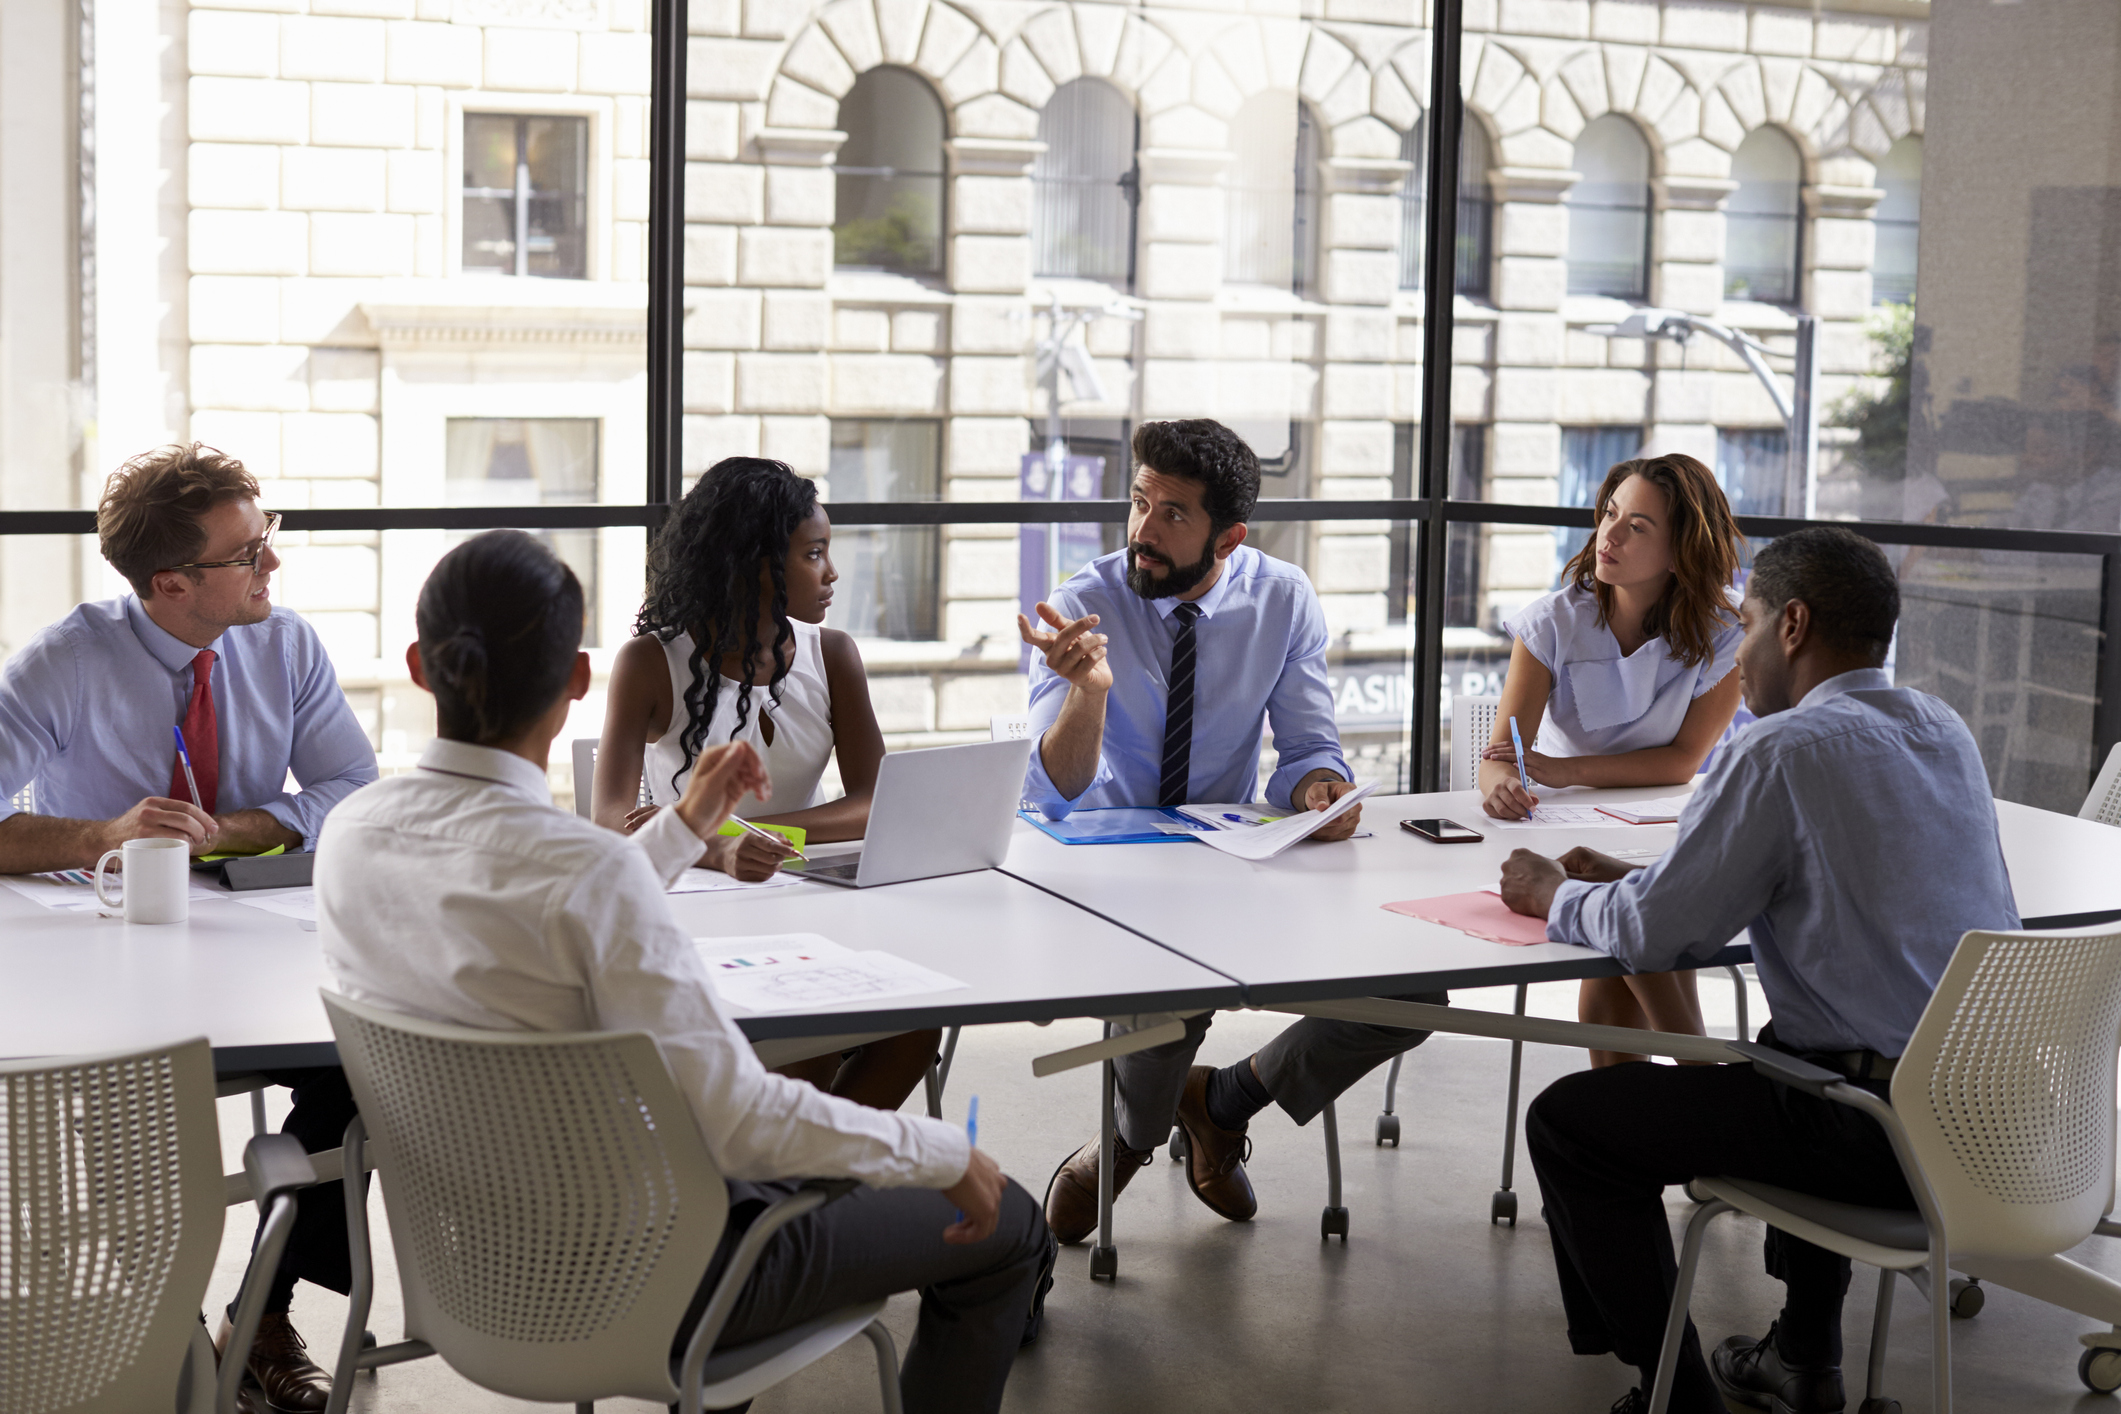 Stock photo of group of business professionals sitting around conference room table at a meeting with their supervisor